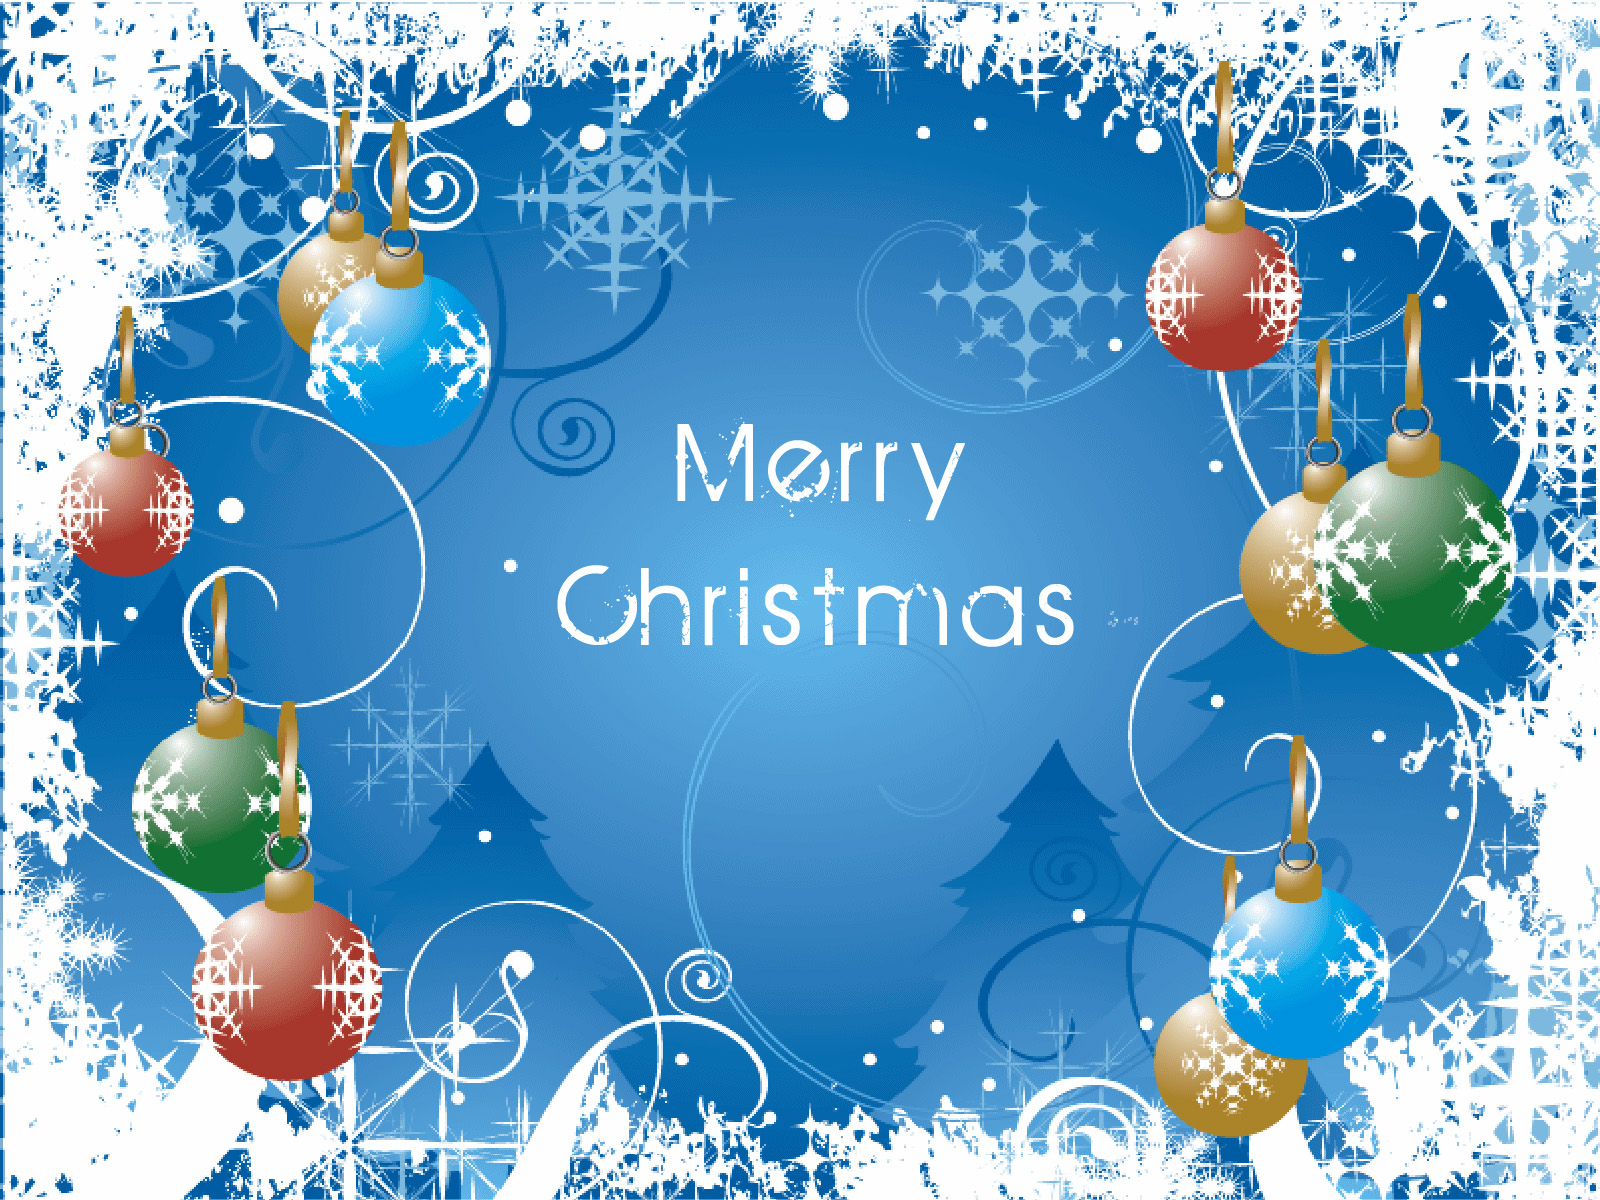 merry christmas wallpaper green background merry christmas wallpaper 1600x1200